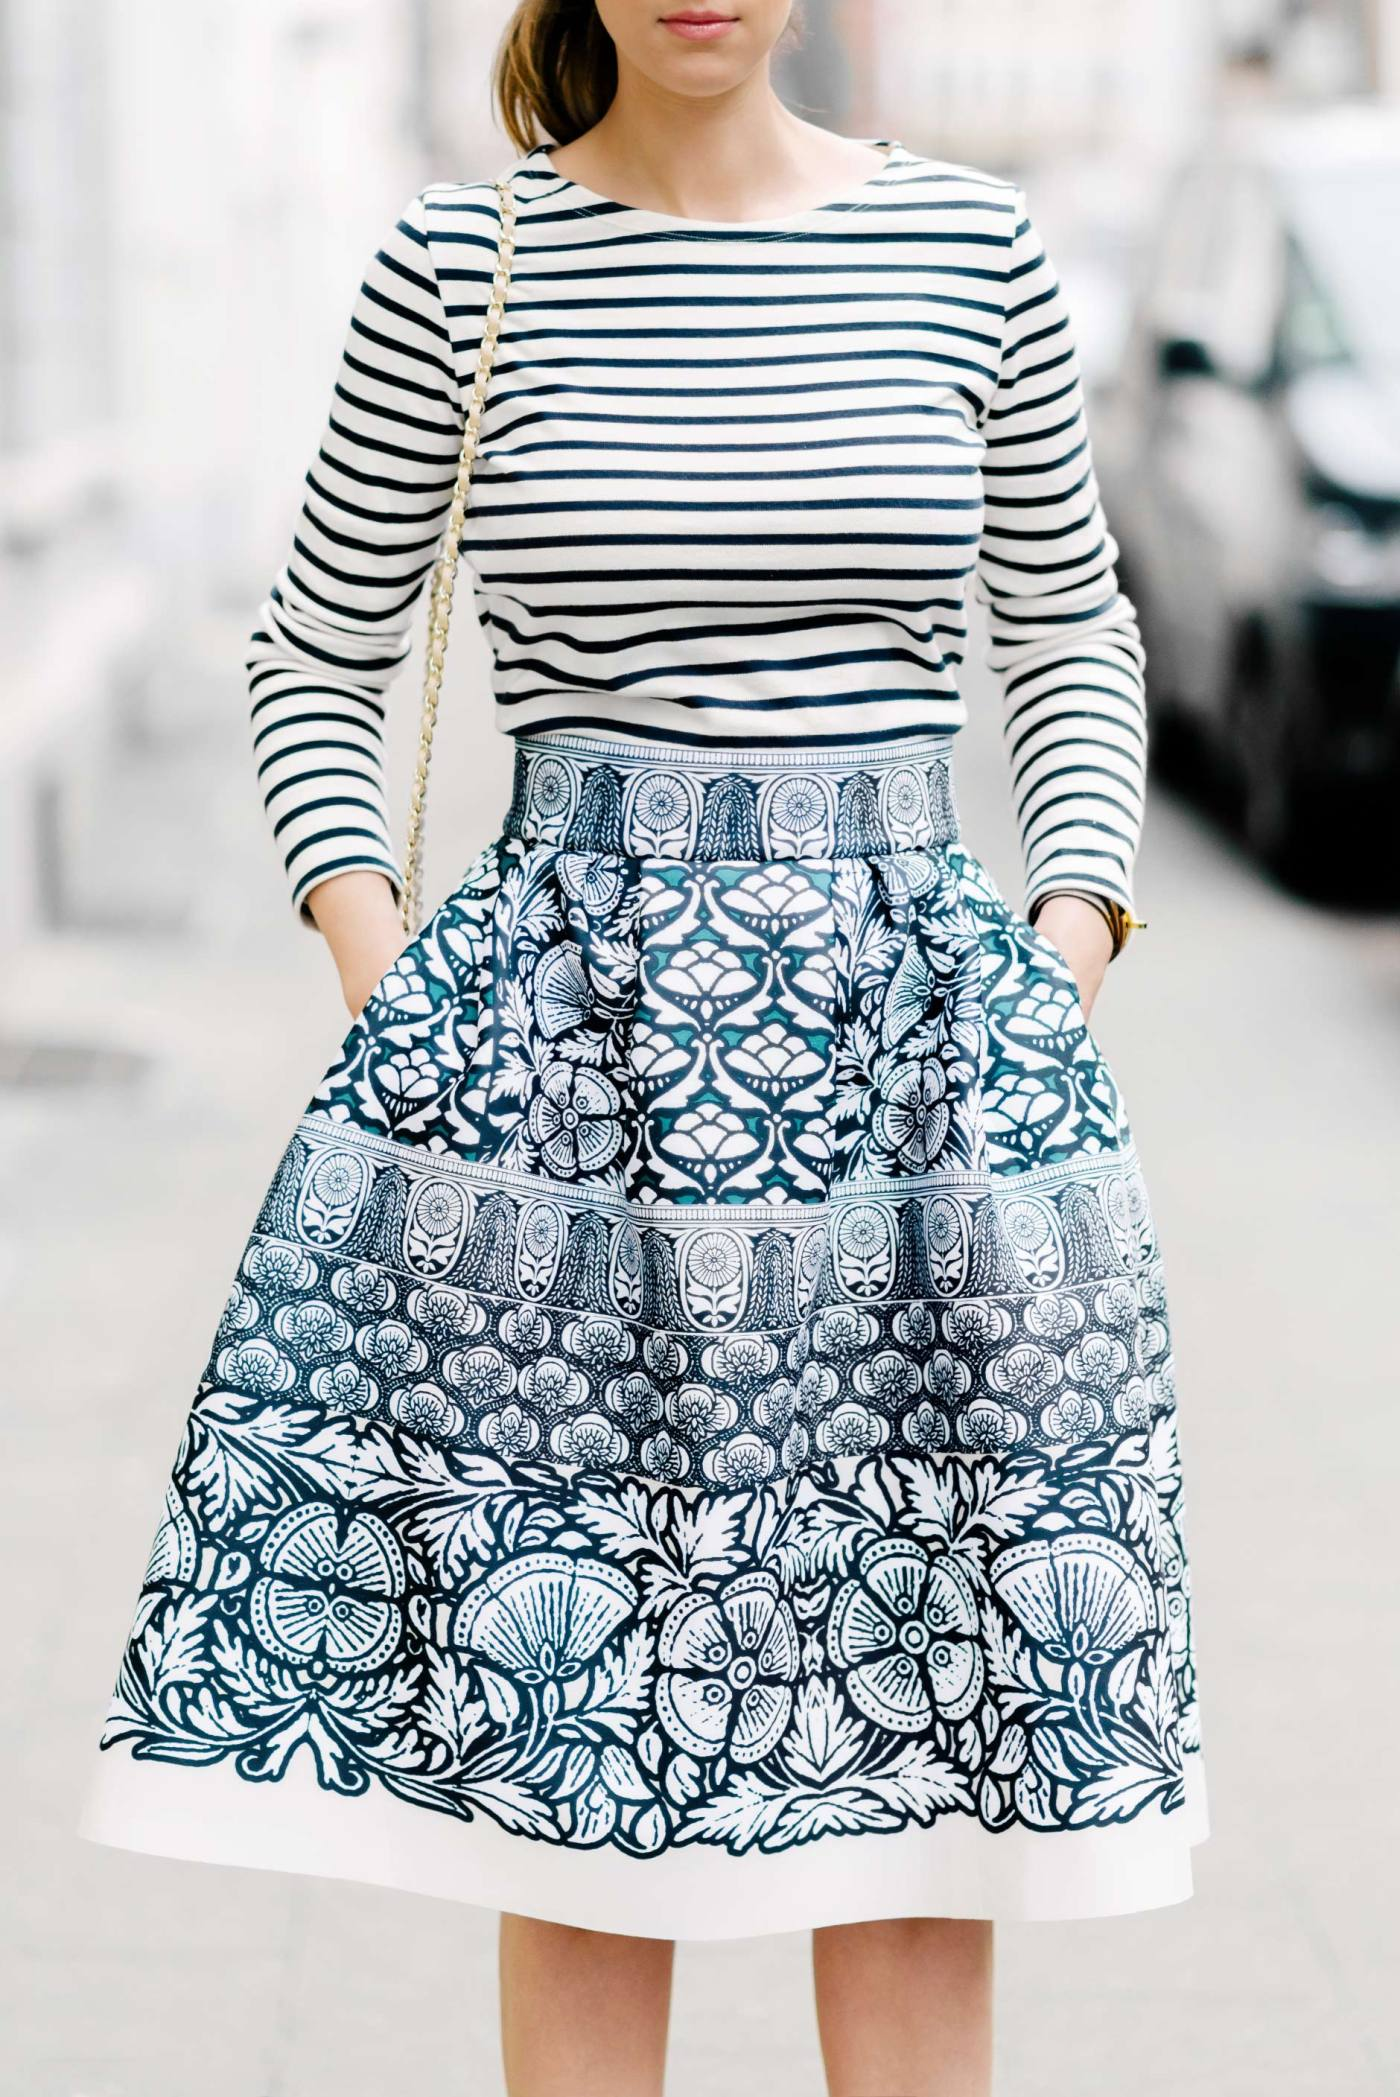 pattern-mix-outfit-06